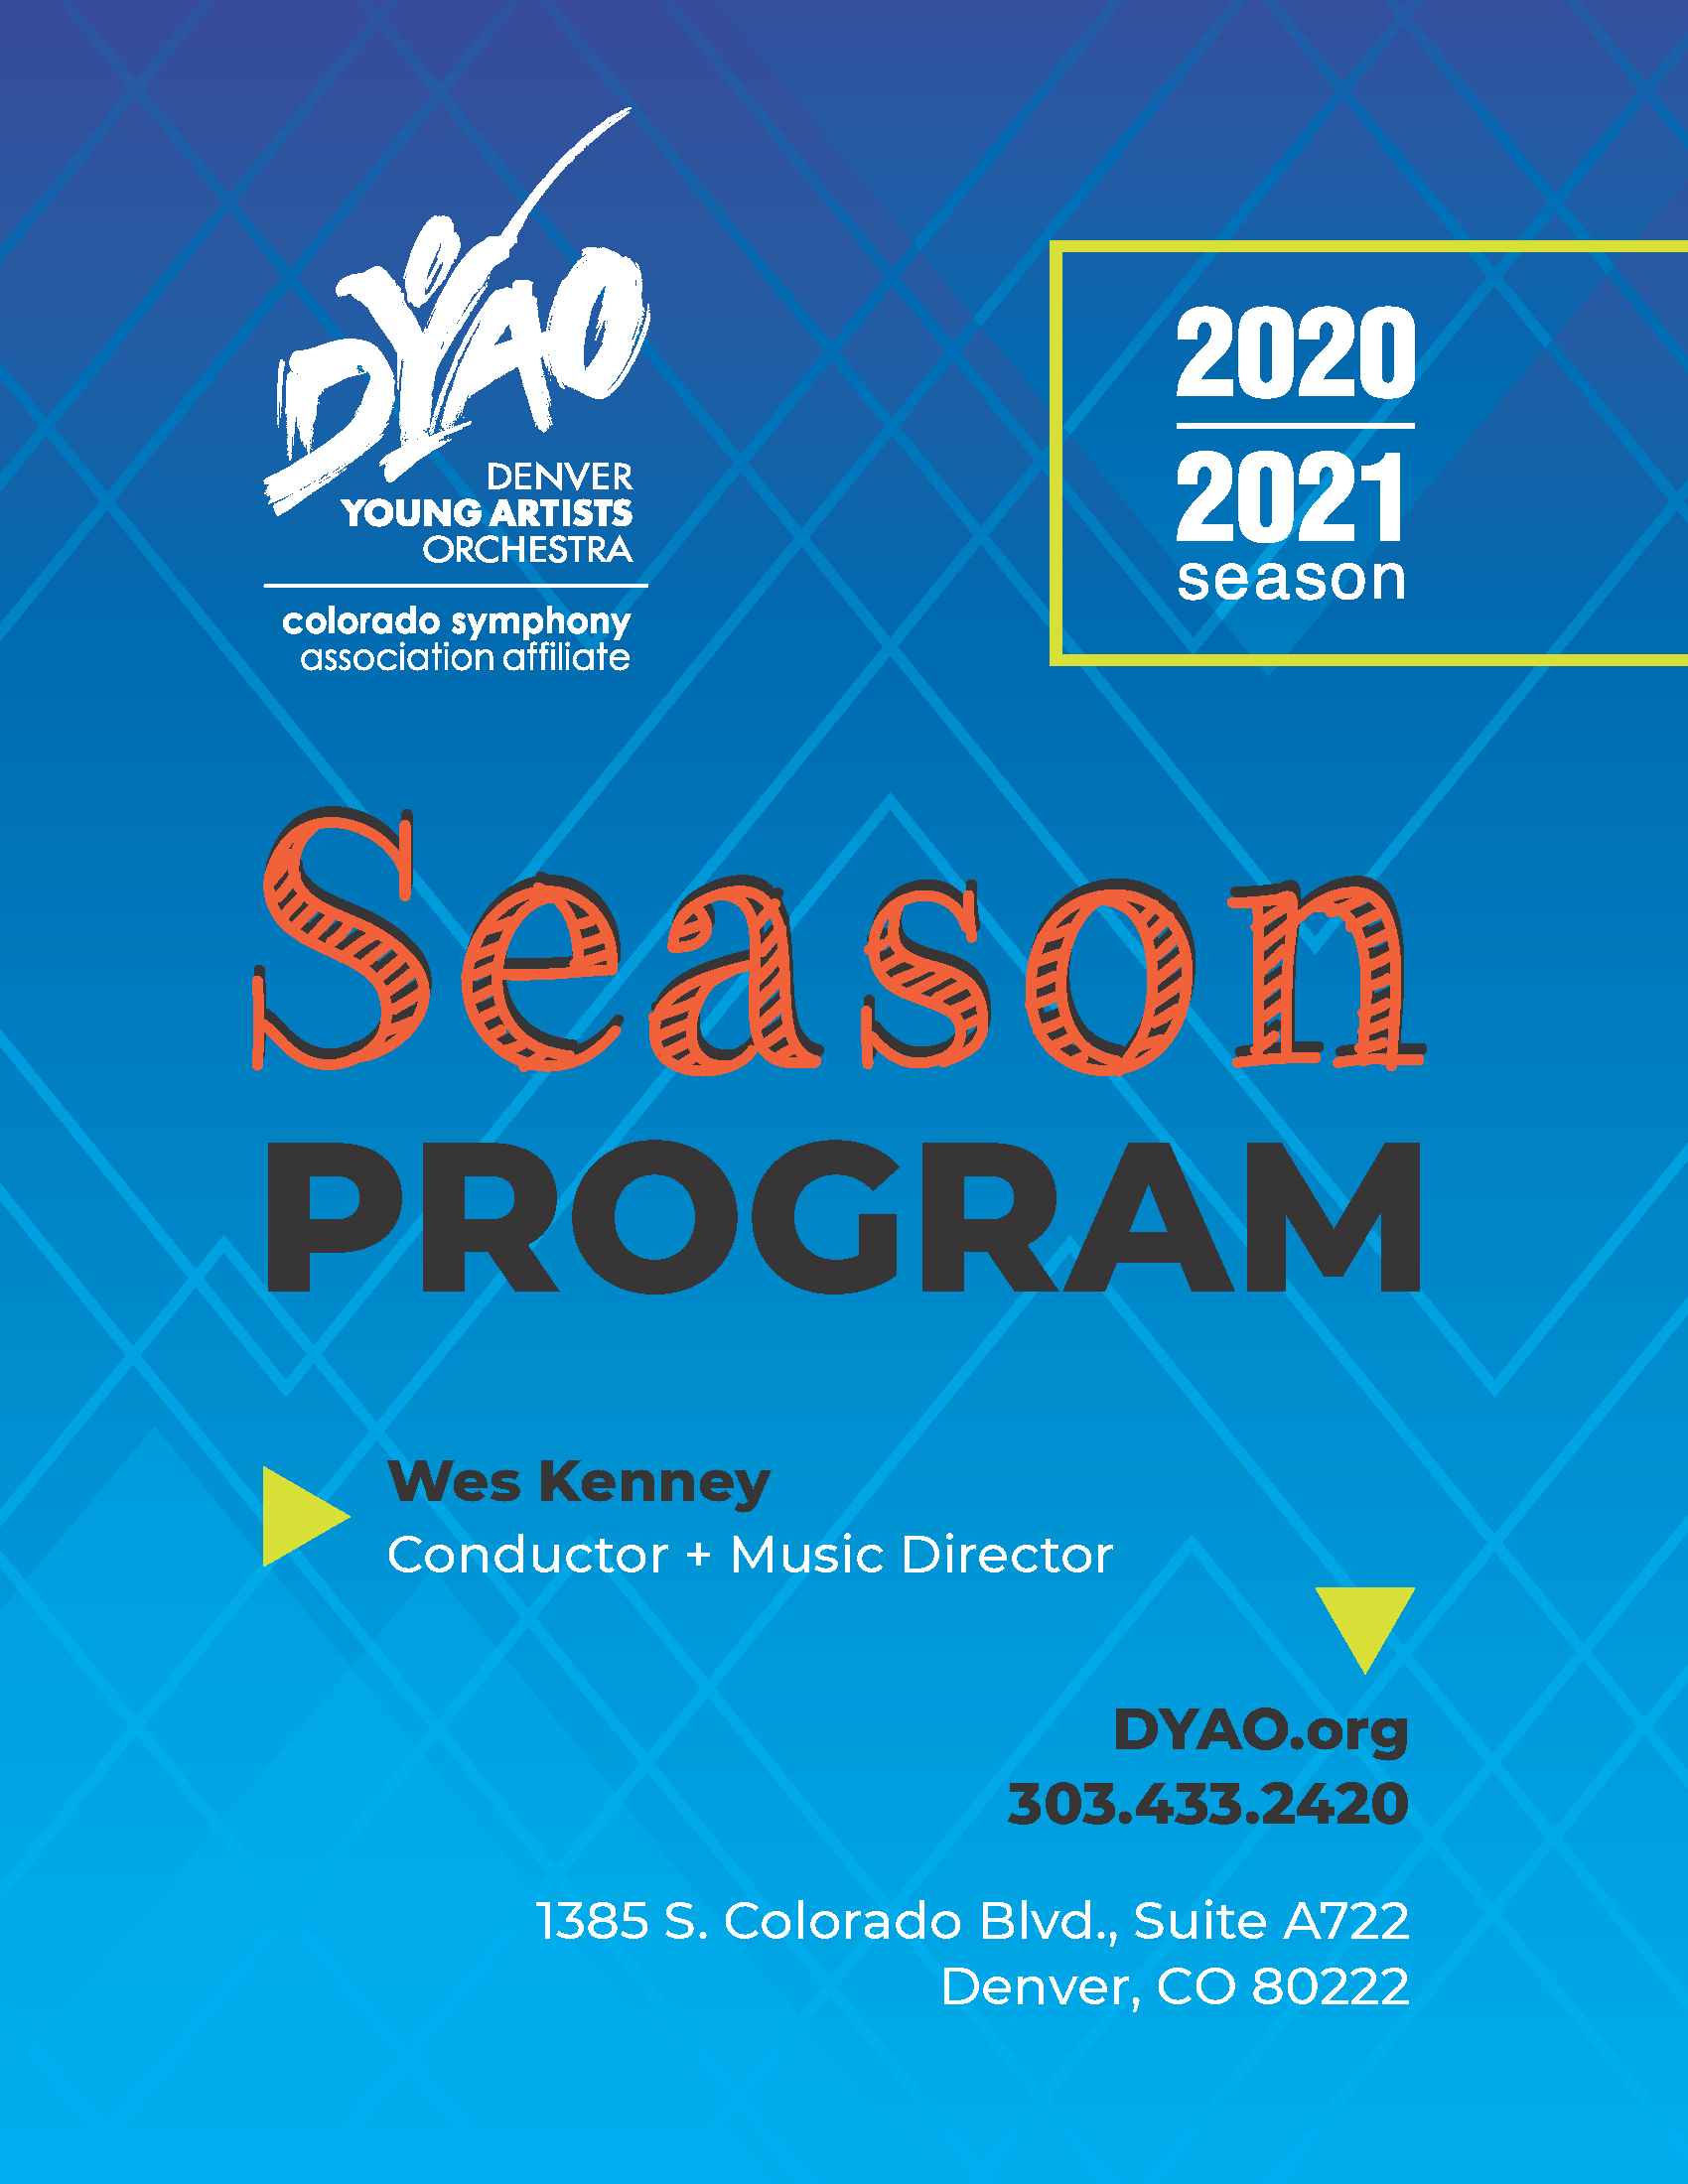 Our 2020-2021 Season Program